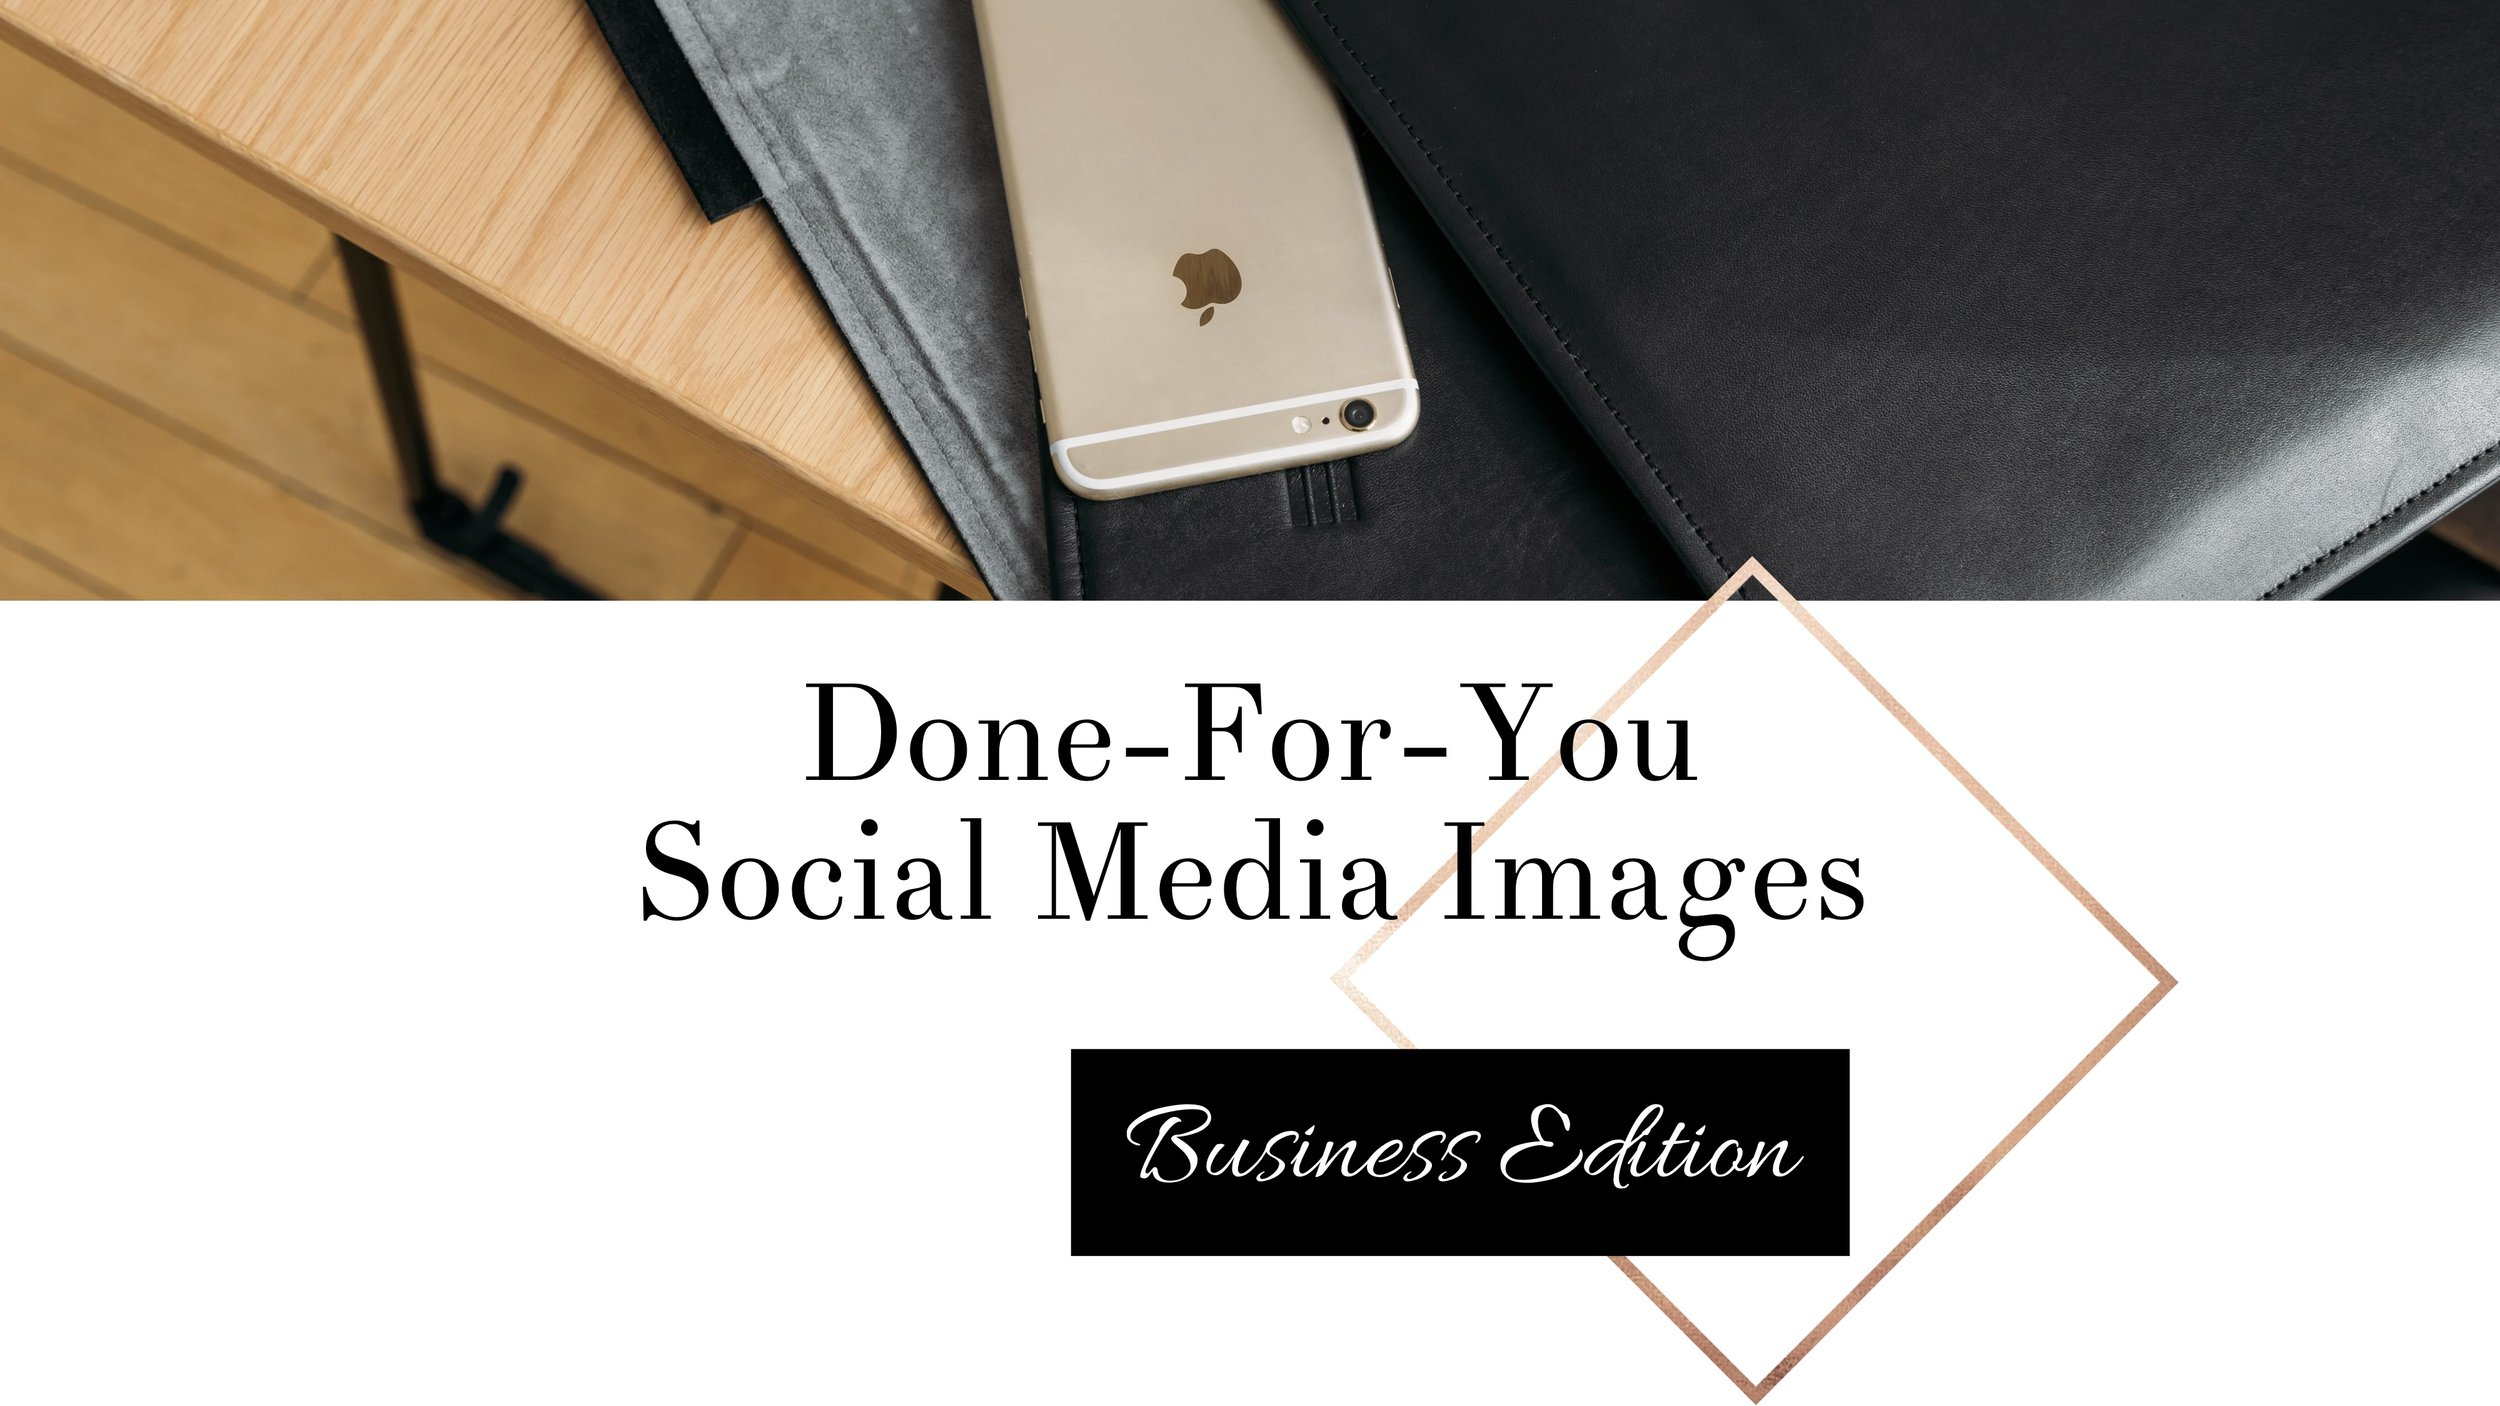 Business Edition of Done-For-You Social Media Images (1).jpg